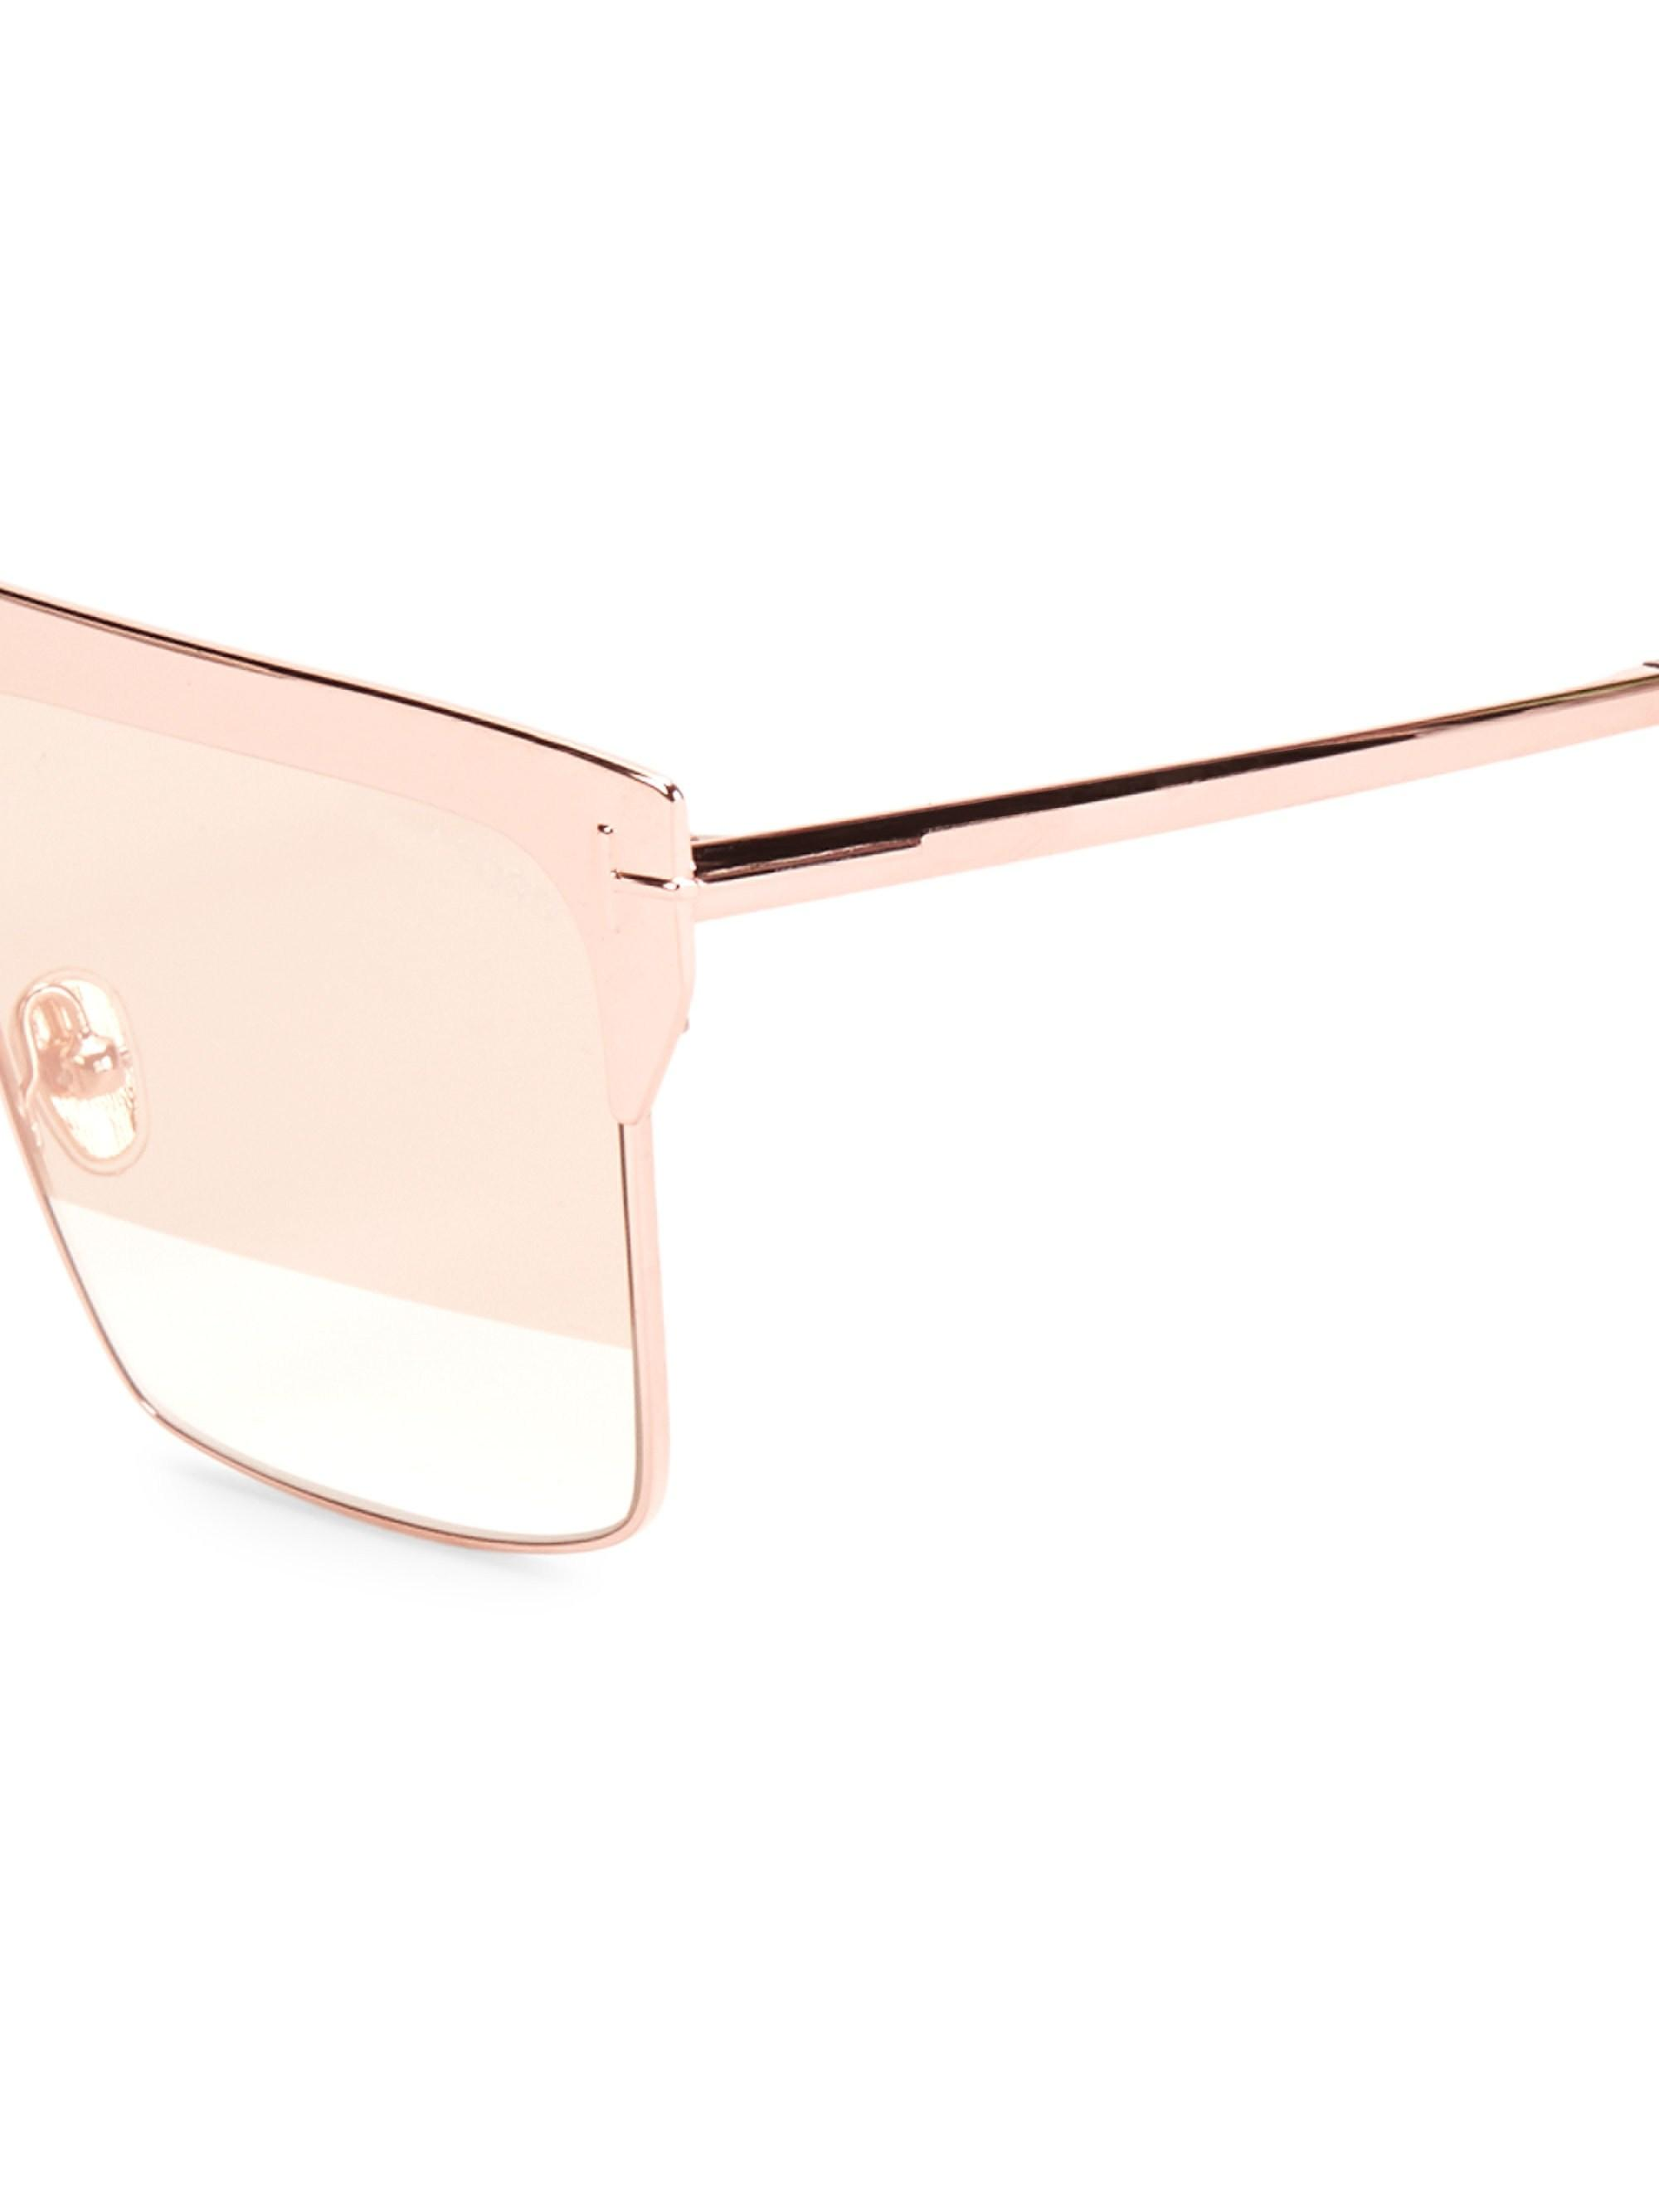 e6afdc12e3b2 Tom Ford - Multicolor Women s West 59mm Square Rose Goldplated Sunglasses -  Rose Gold - Lyst. View fullscreen